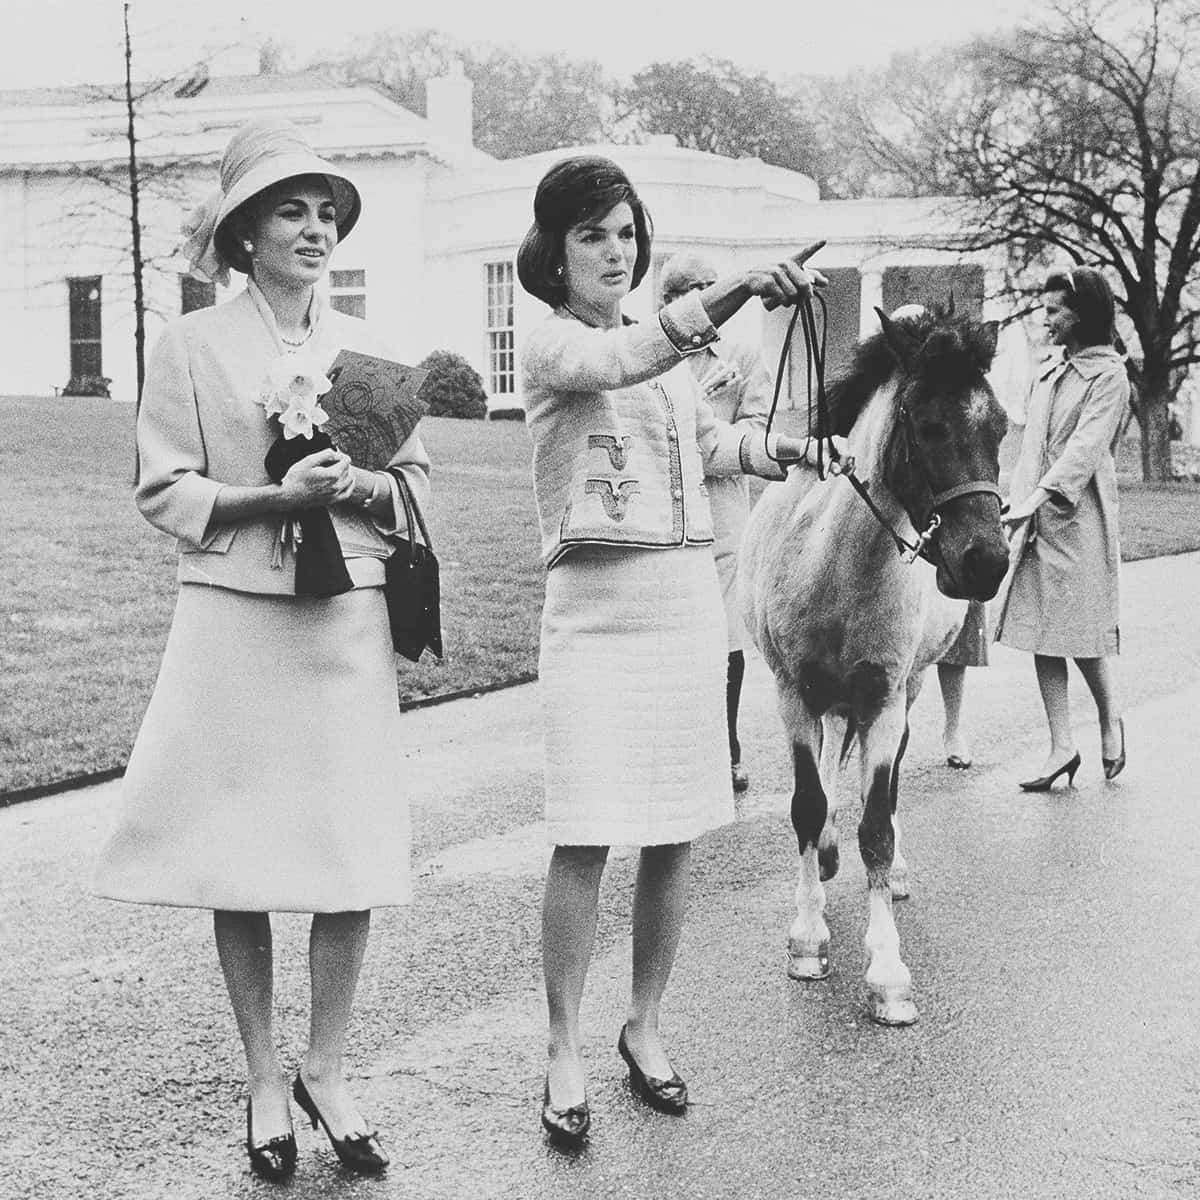 FILE – In this April 12, 1962, file photo first lady Jacqueline Kennedy gives a guided tour of the White House grounds to Empress Farah Pahlavi of Iran in Washington. Kennedy leads her daughter Caroline's pony, Macaroni, which had been nuzzling the empress, attracted by the daffodils she was carrying. In the background is the first lady's press secretary, Pamela Turnure. (AP Photo/Pool, File)